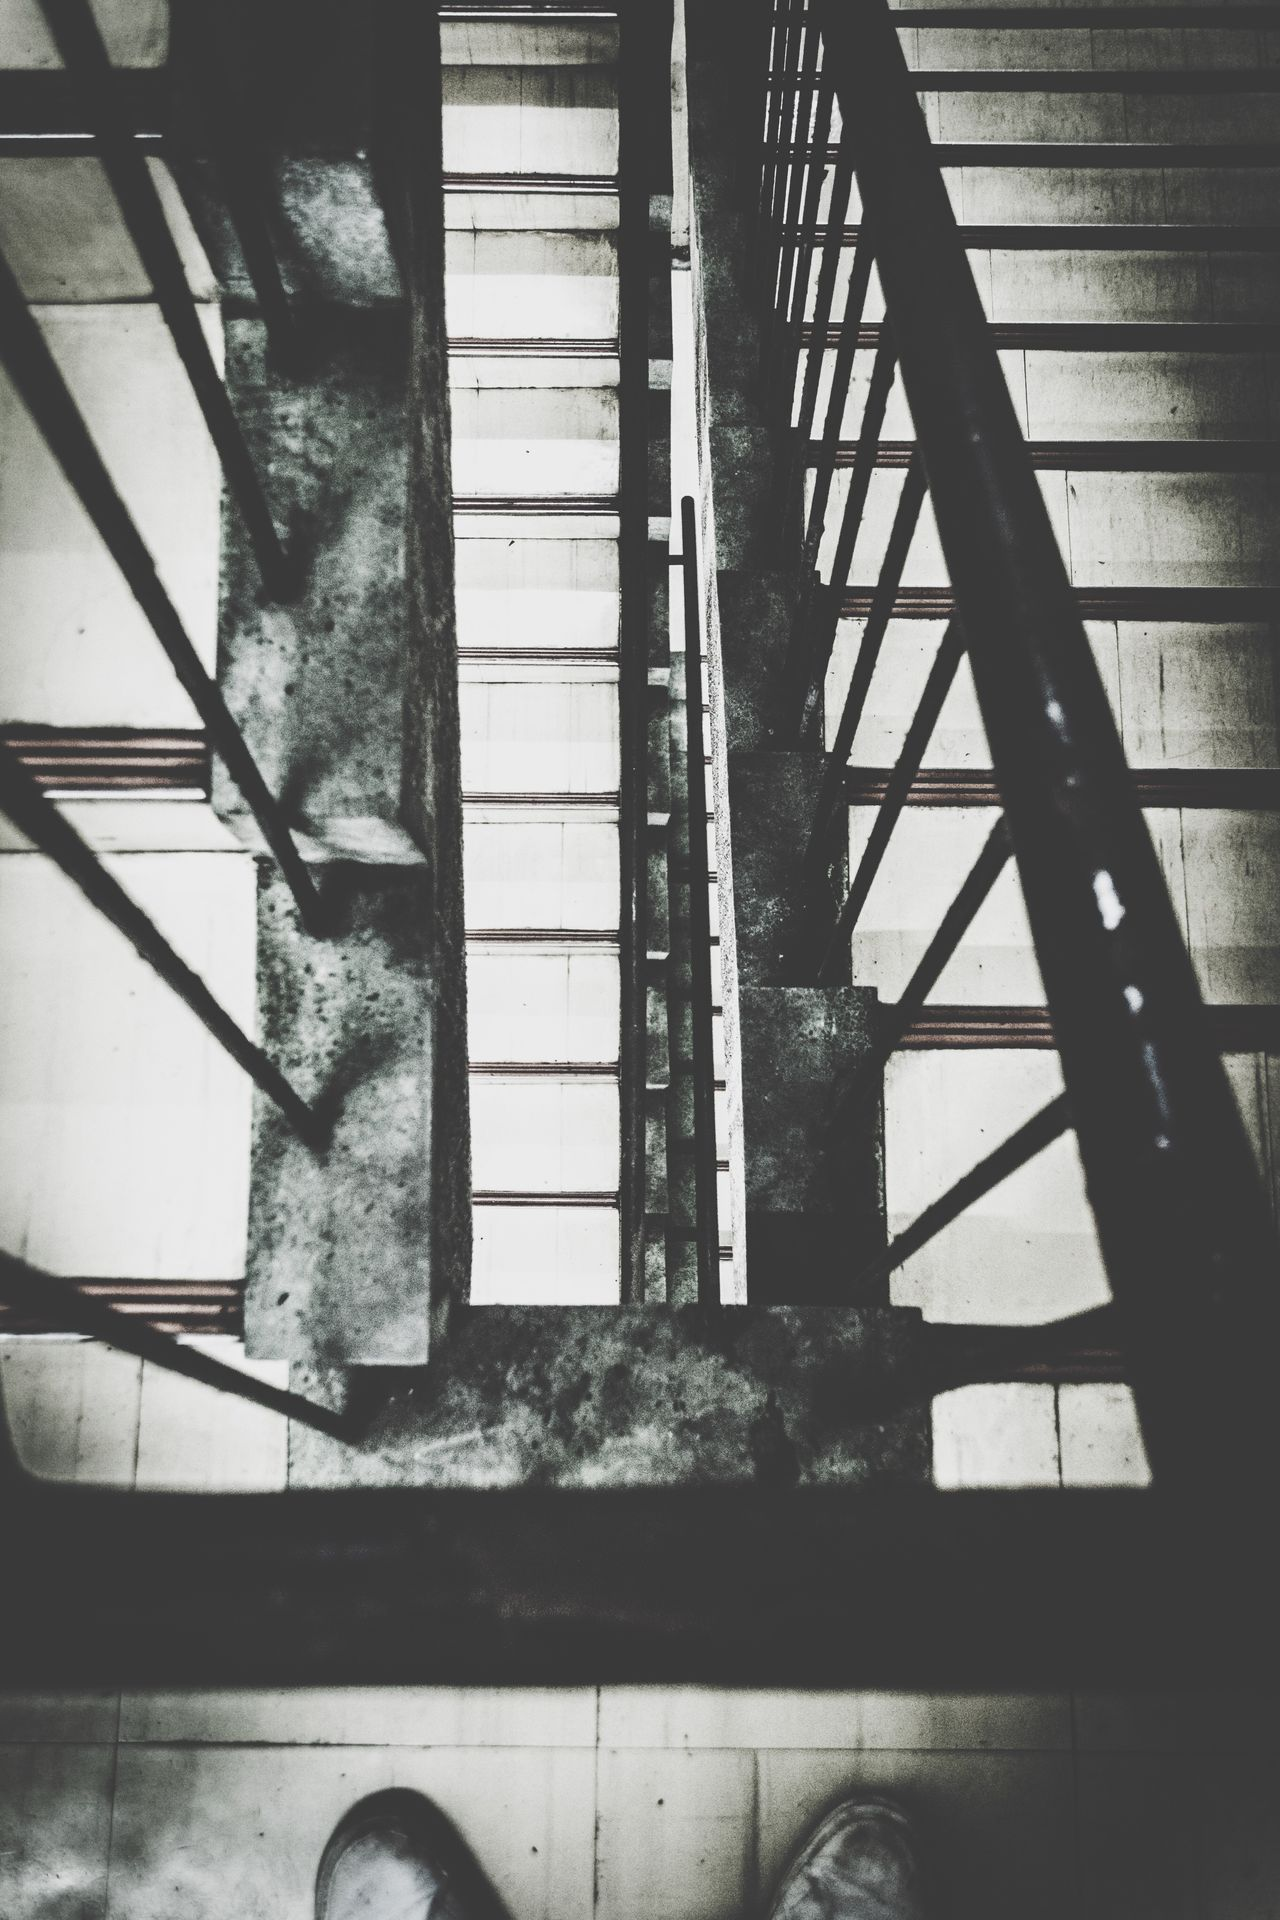 Stairs Drastic Edit Footscapes From My Point Of View View From Above Dark Darkness And Light Best Of Stairways Showing Imperfection Monochrome B&w Street Photography Share Your Adventure Streetphotography Stairways Up Close Street Photography Ominous The Darkness Within Light And Shadow Black & White Silence Pattern Pieces Urban Geometry Going The Distance Life In Motion Gangsters Paradise Resist